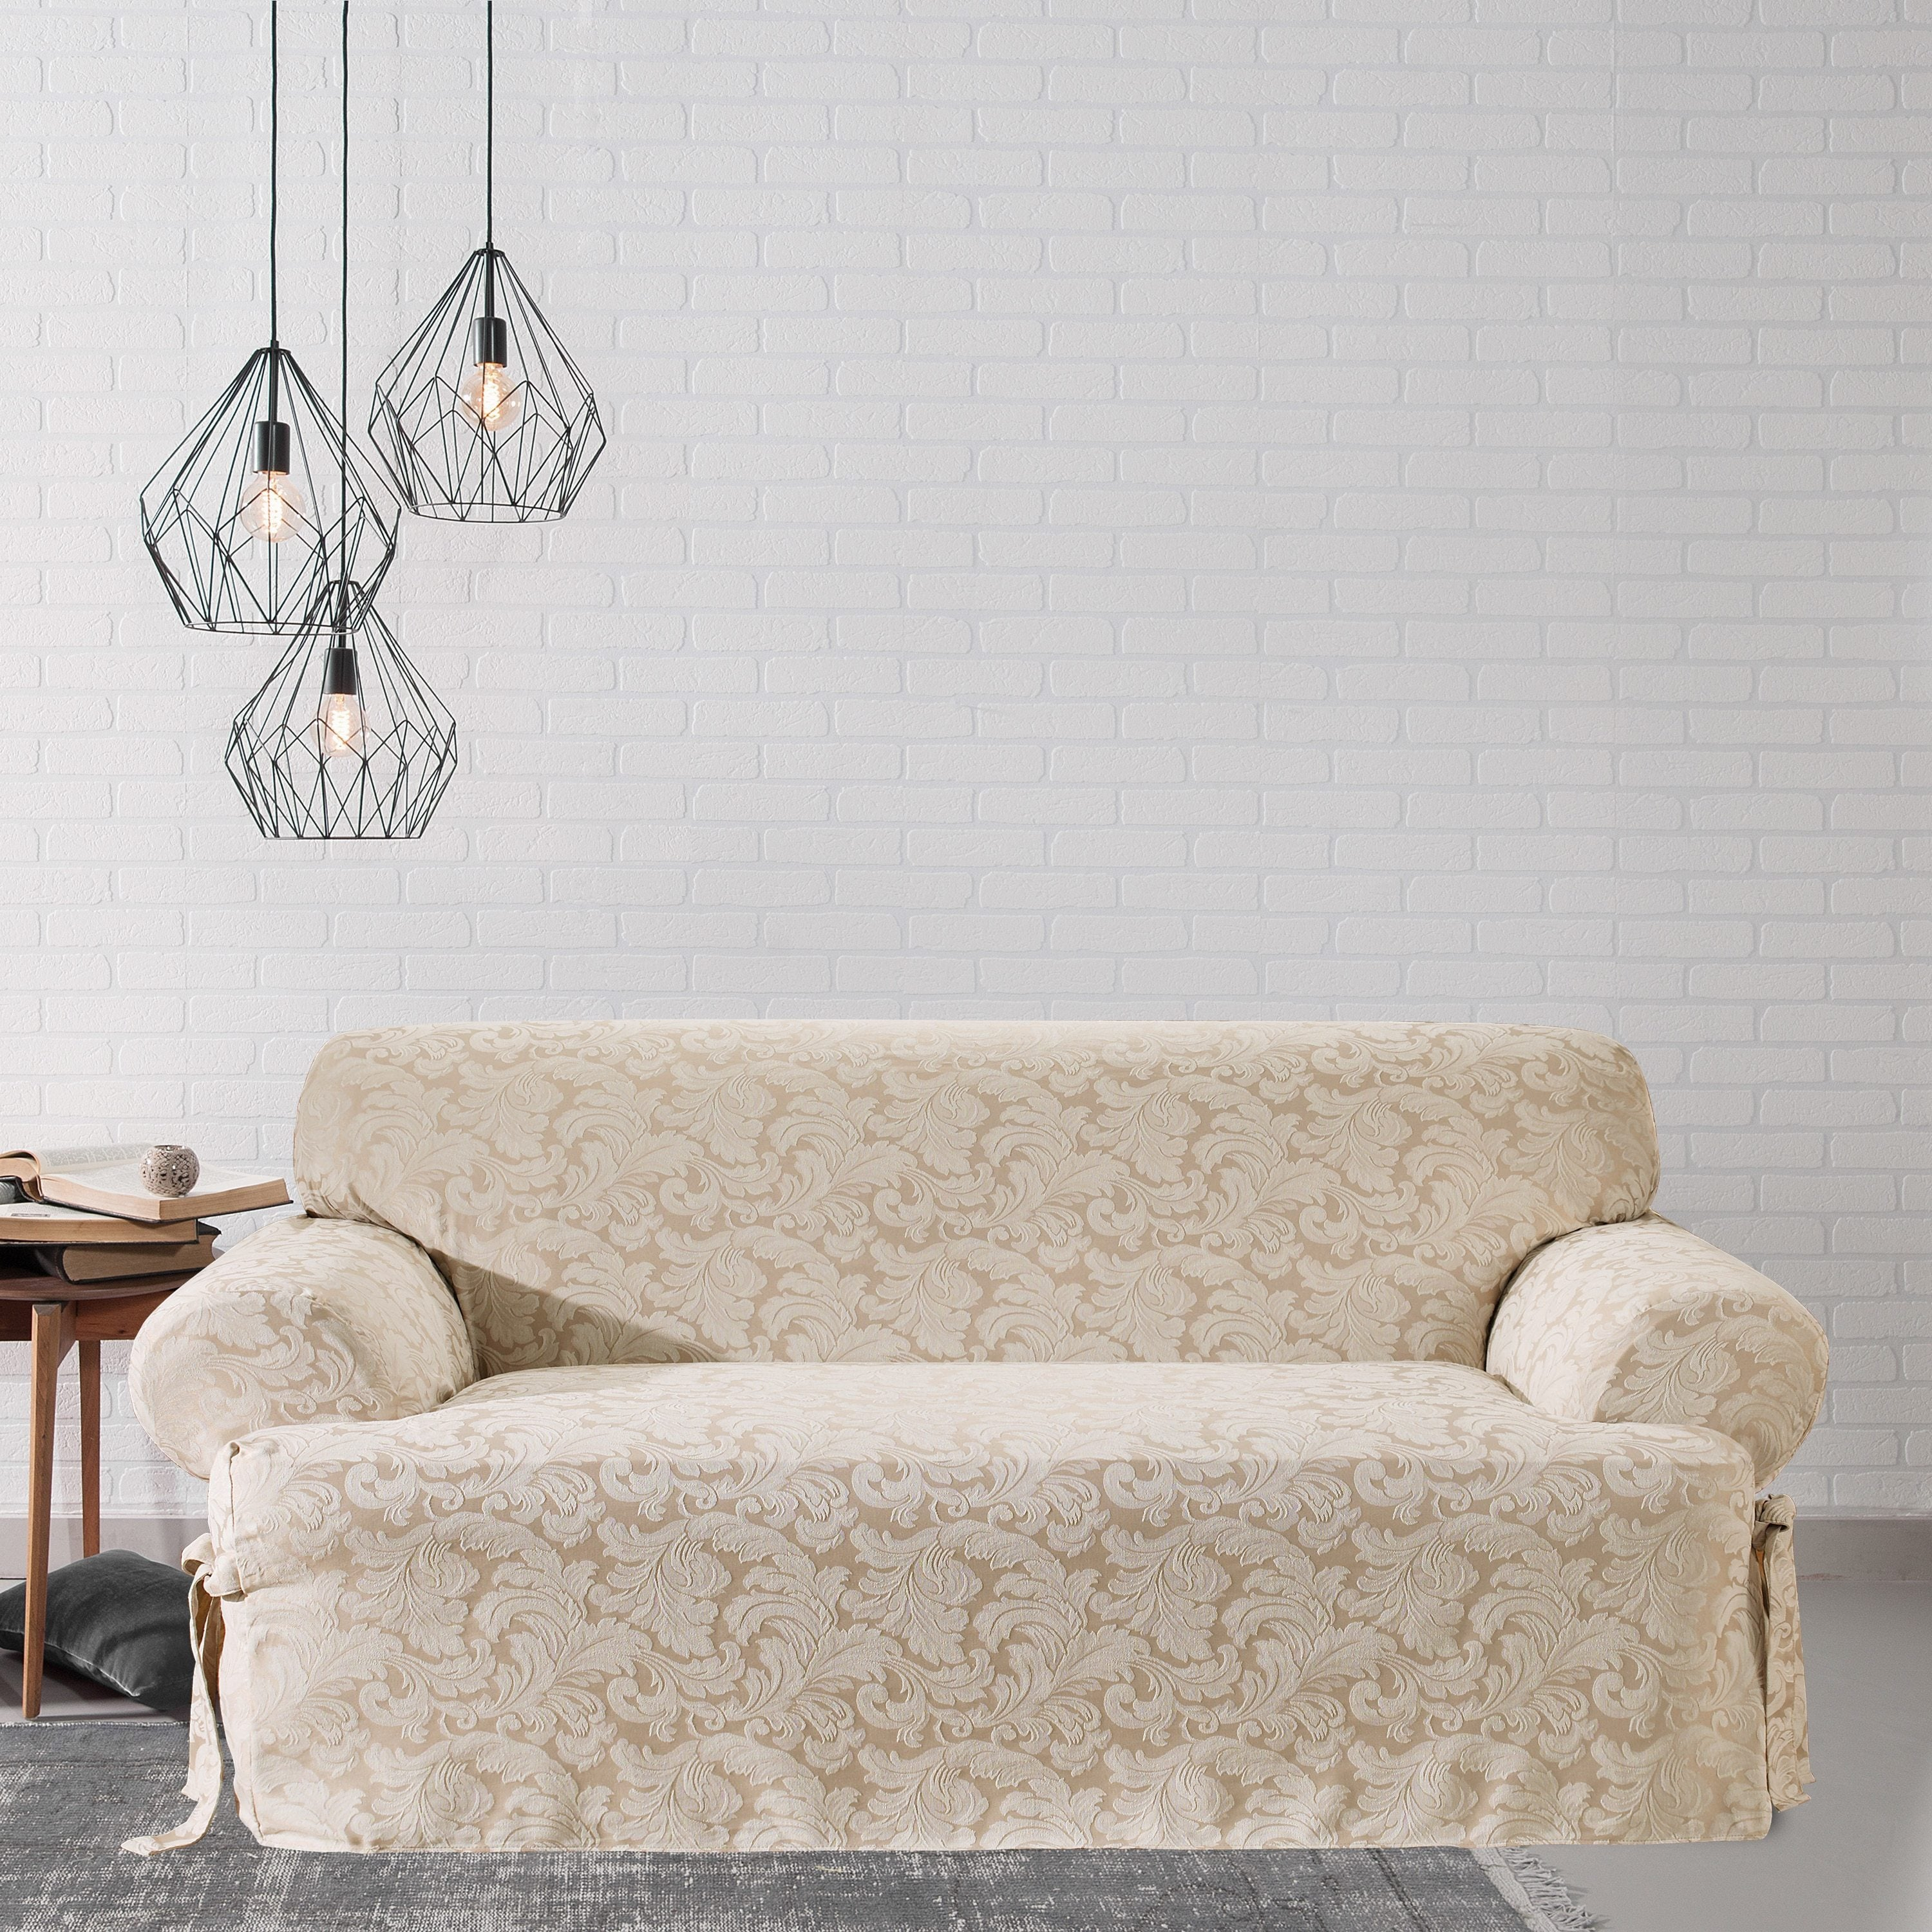 Scroll T cushion Sofa Slipcover